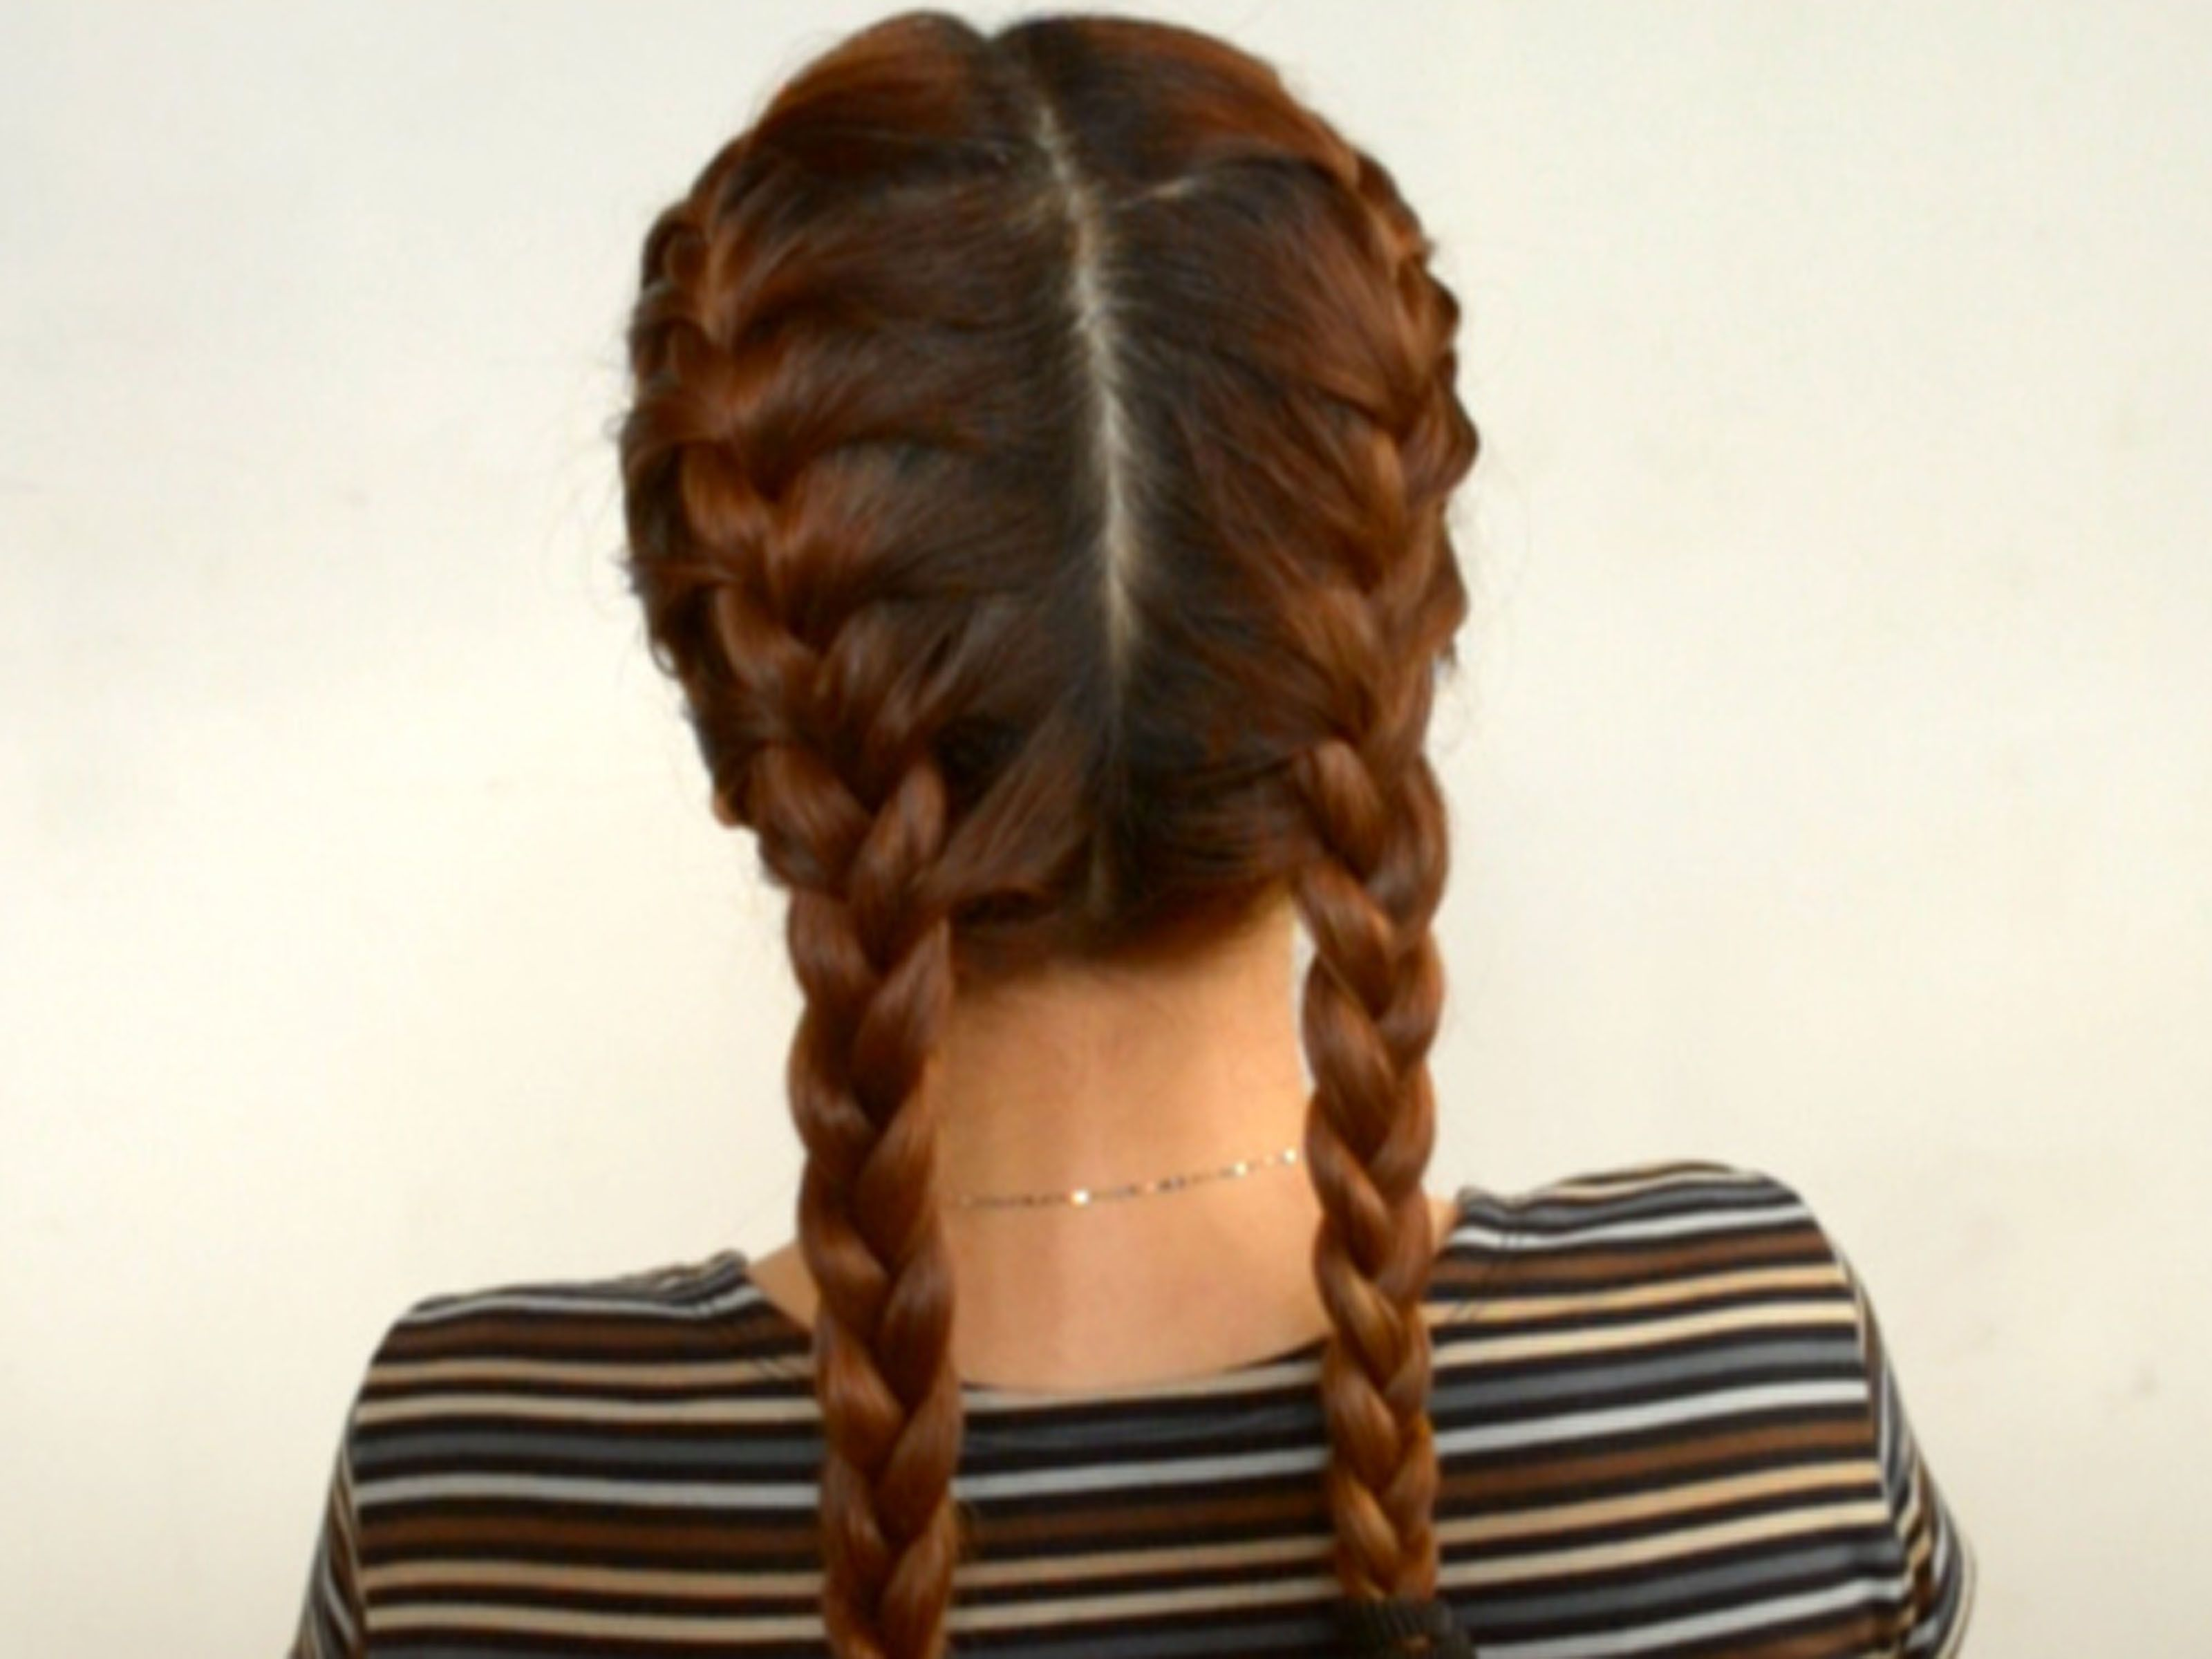 how to do hair plaits styles do braids braided hair 8532